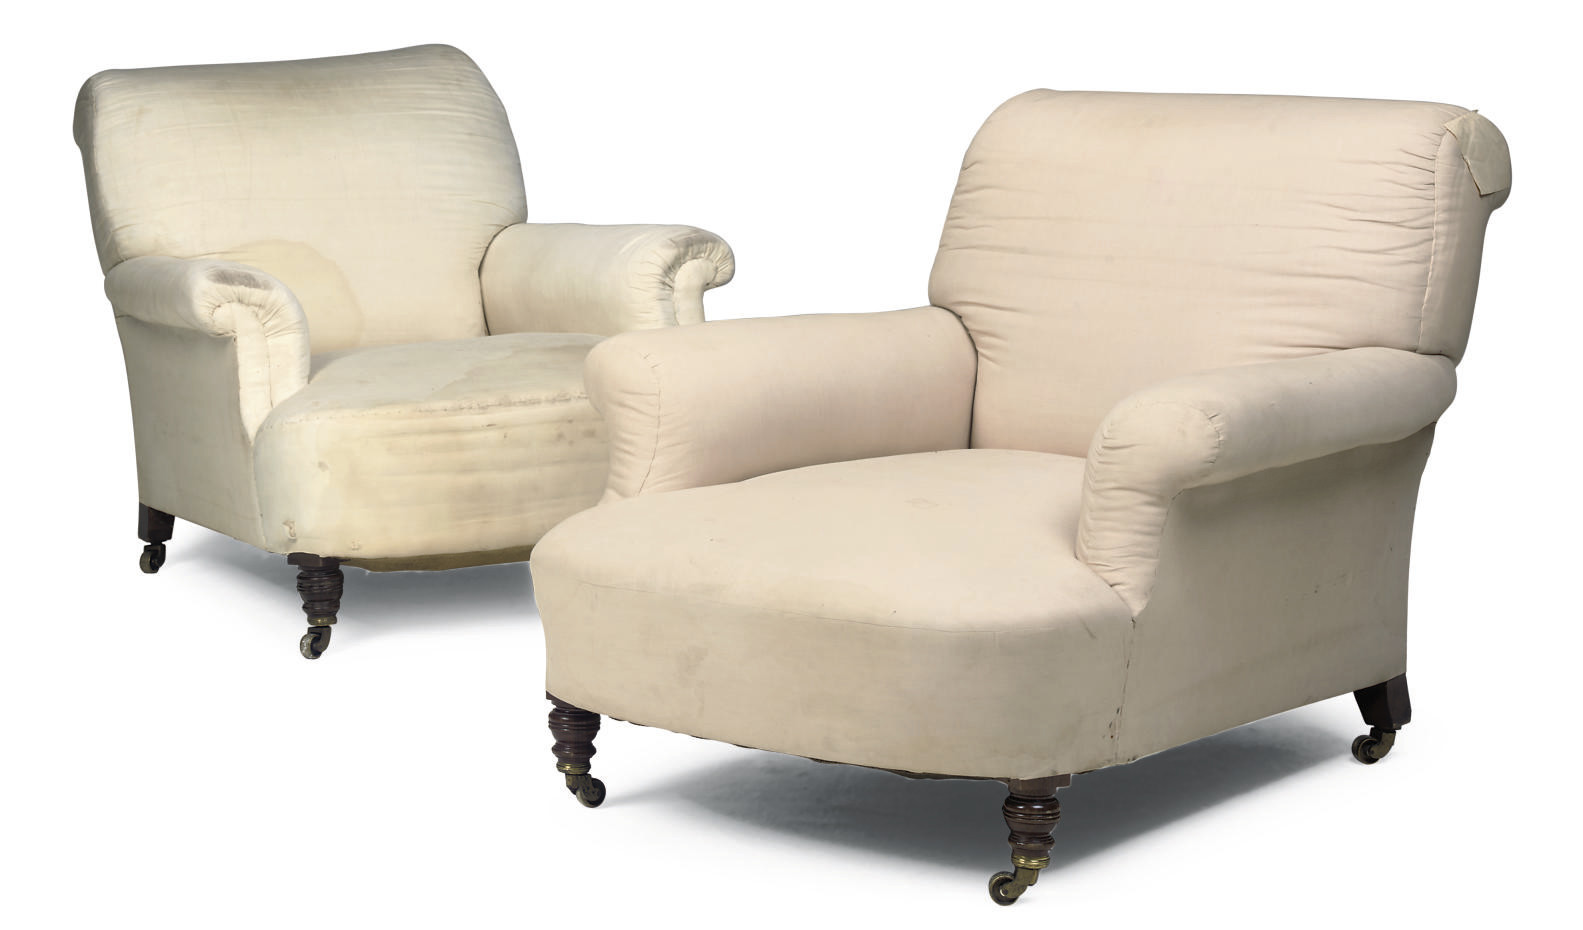 A MATCHED PAIR OF HOWARD ARMCHAIRS